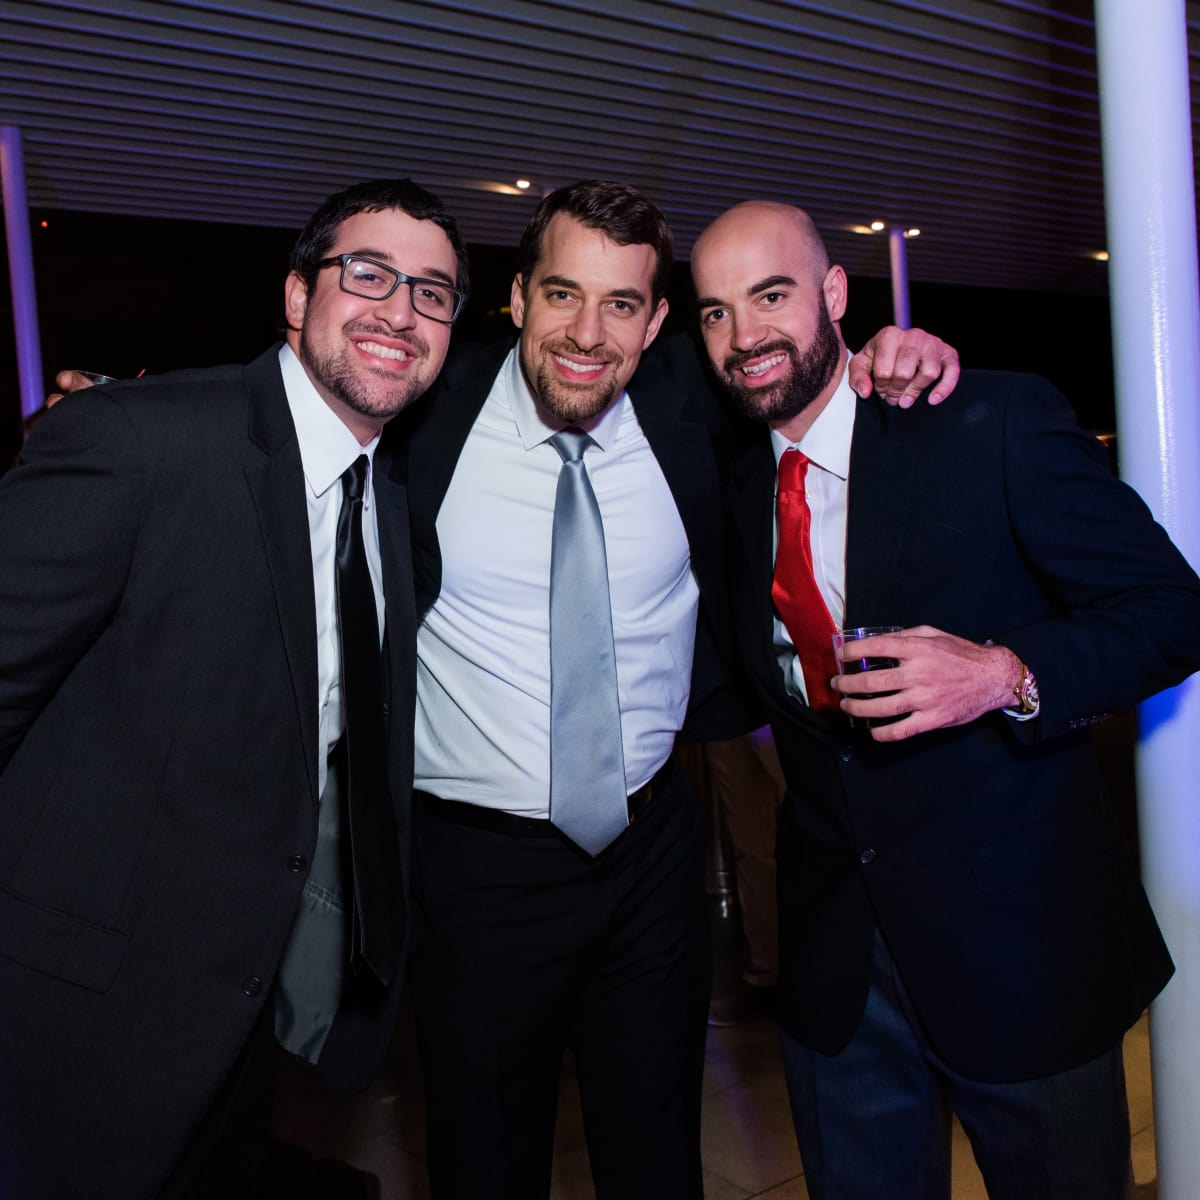 News, Houston Young Lawyers, holiday party, Dec. 2016, Mark Walton, Anthony Walton, Andrew Walton